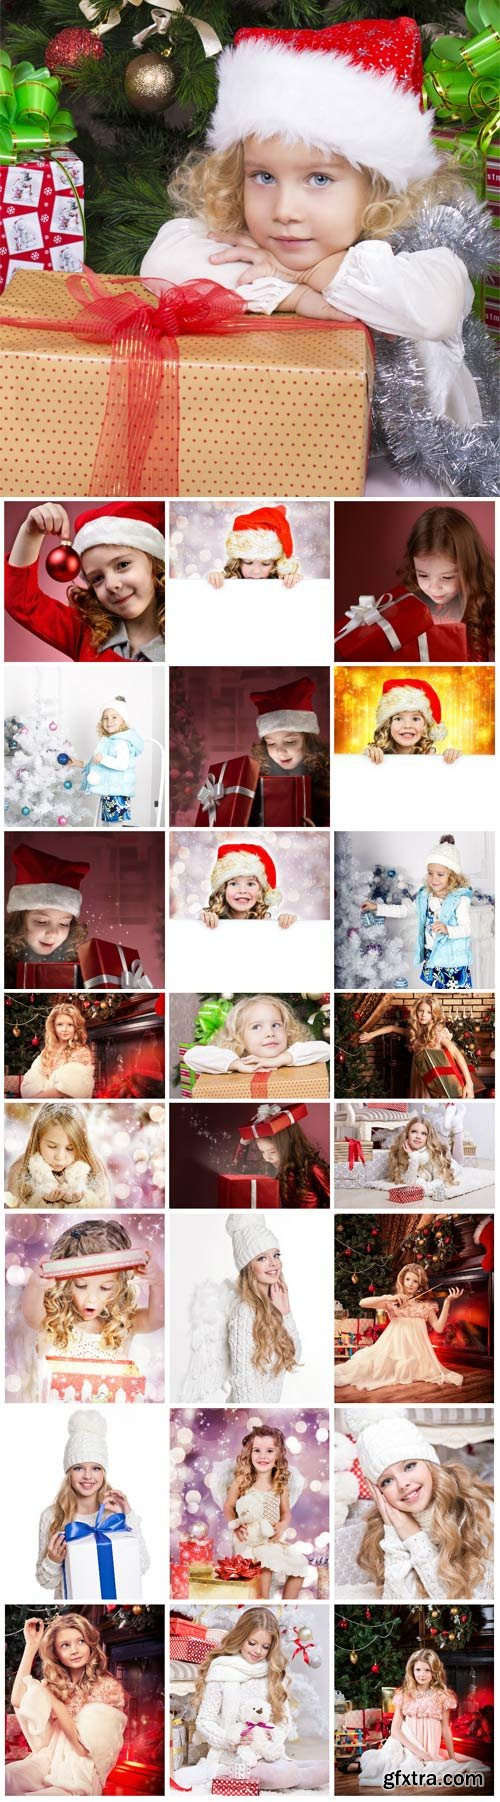 New Year and Christmas stock photos №9